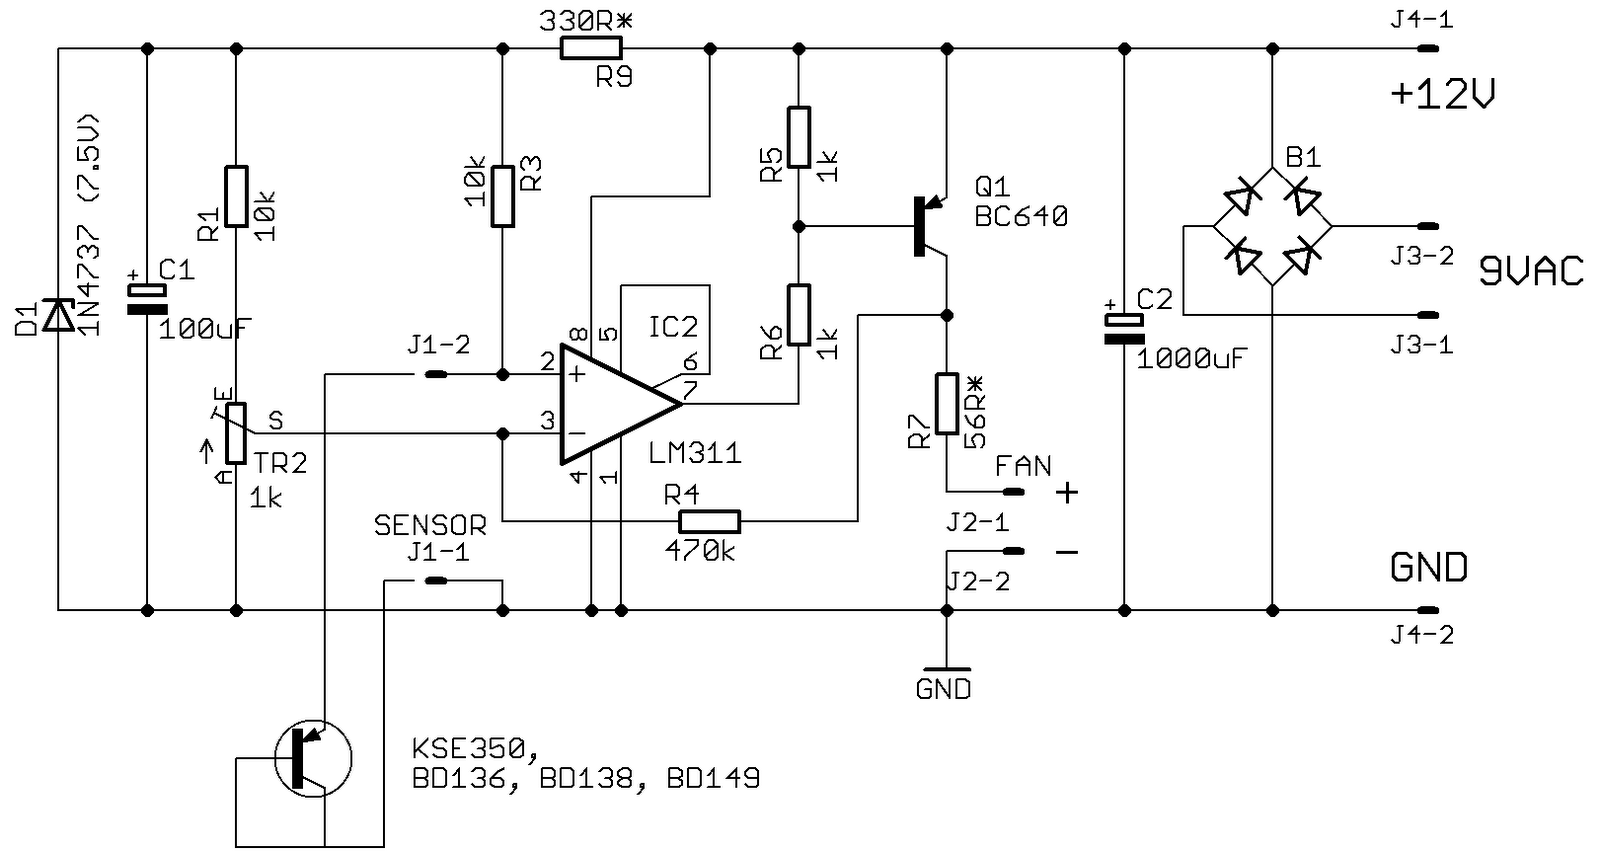 Diyfan Adjustable Lab Power Supply Ac Fan Speed Control Electronics Forum Circuits Projects And The Schematic May Be Supplied With Or Dc Voltage But Not Both Simultaneously If Is Then B1 C2 J3 Omitted